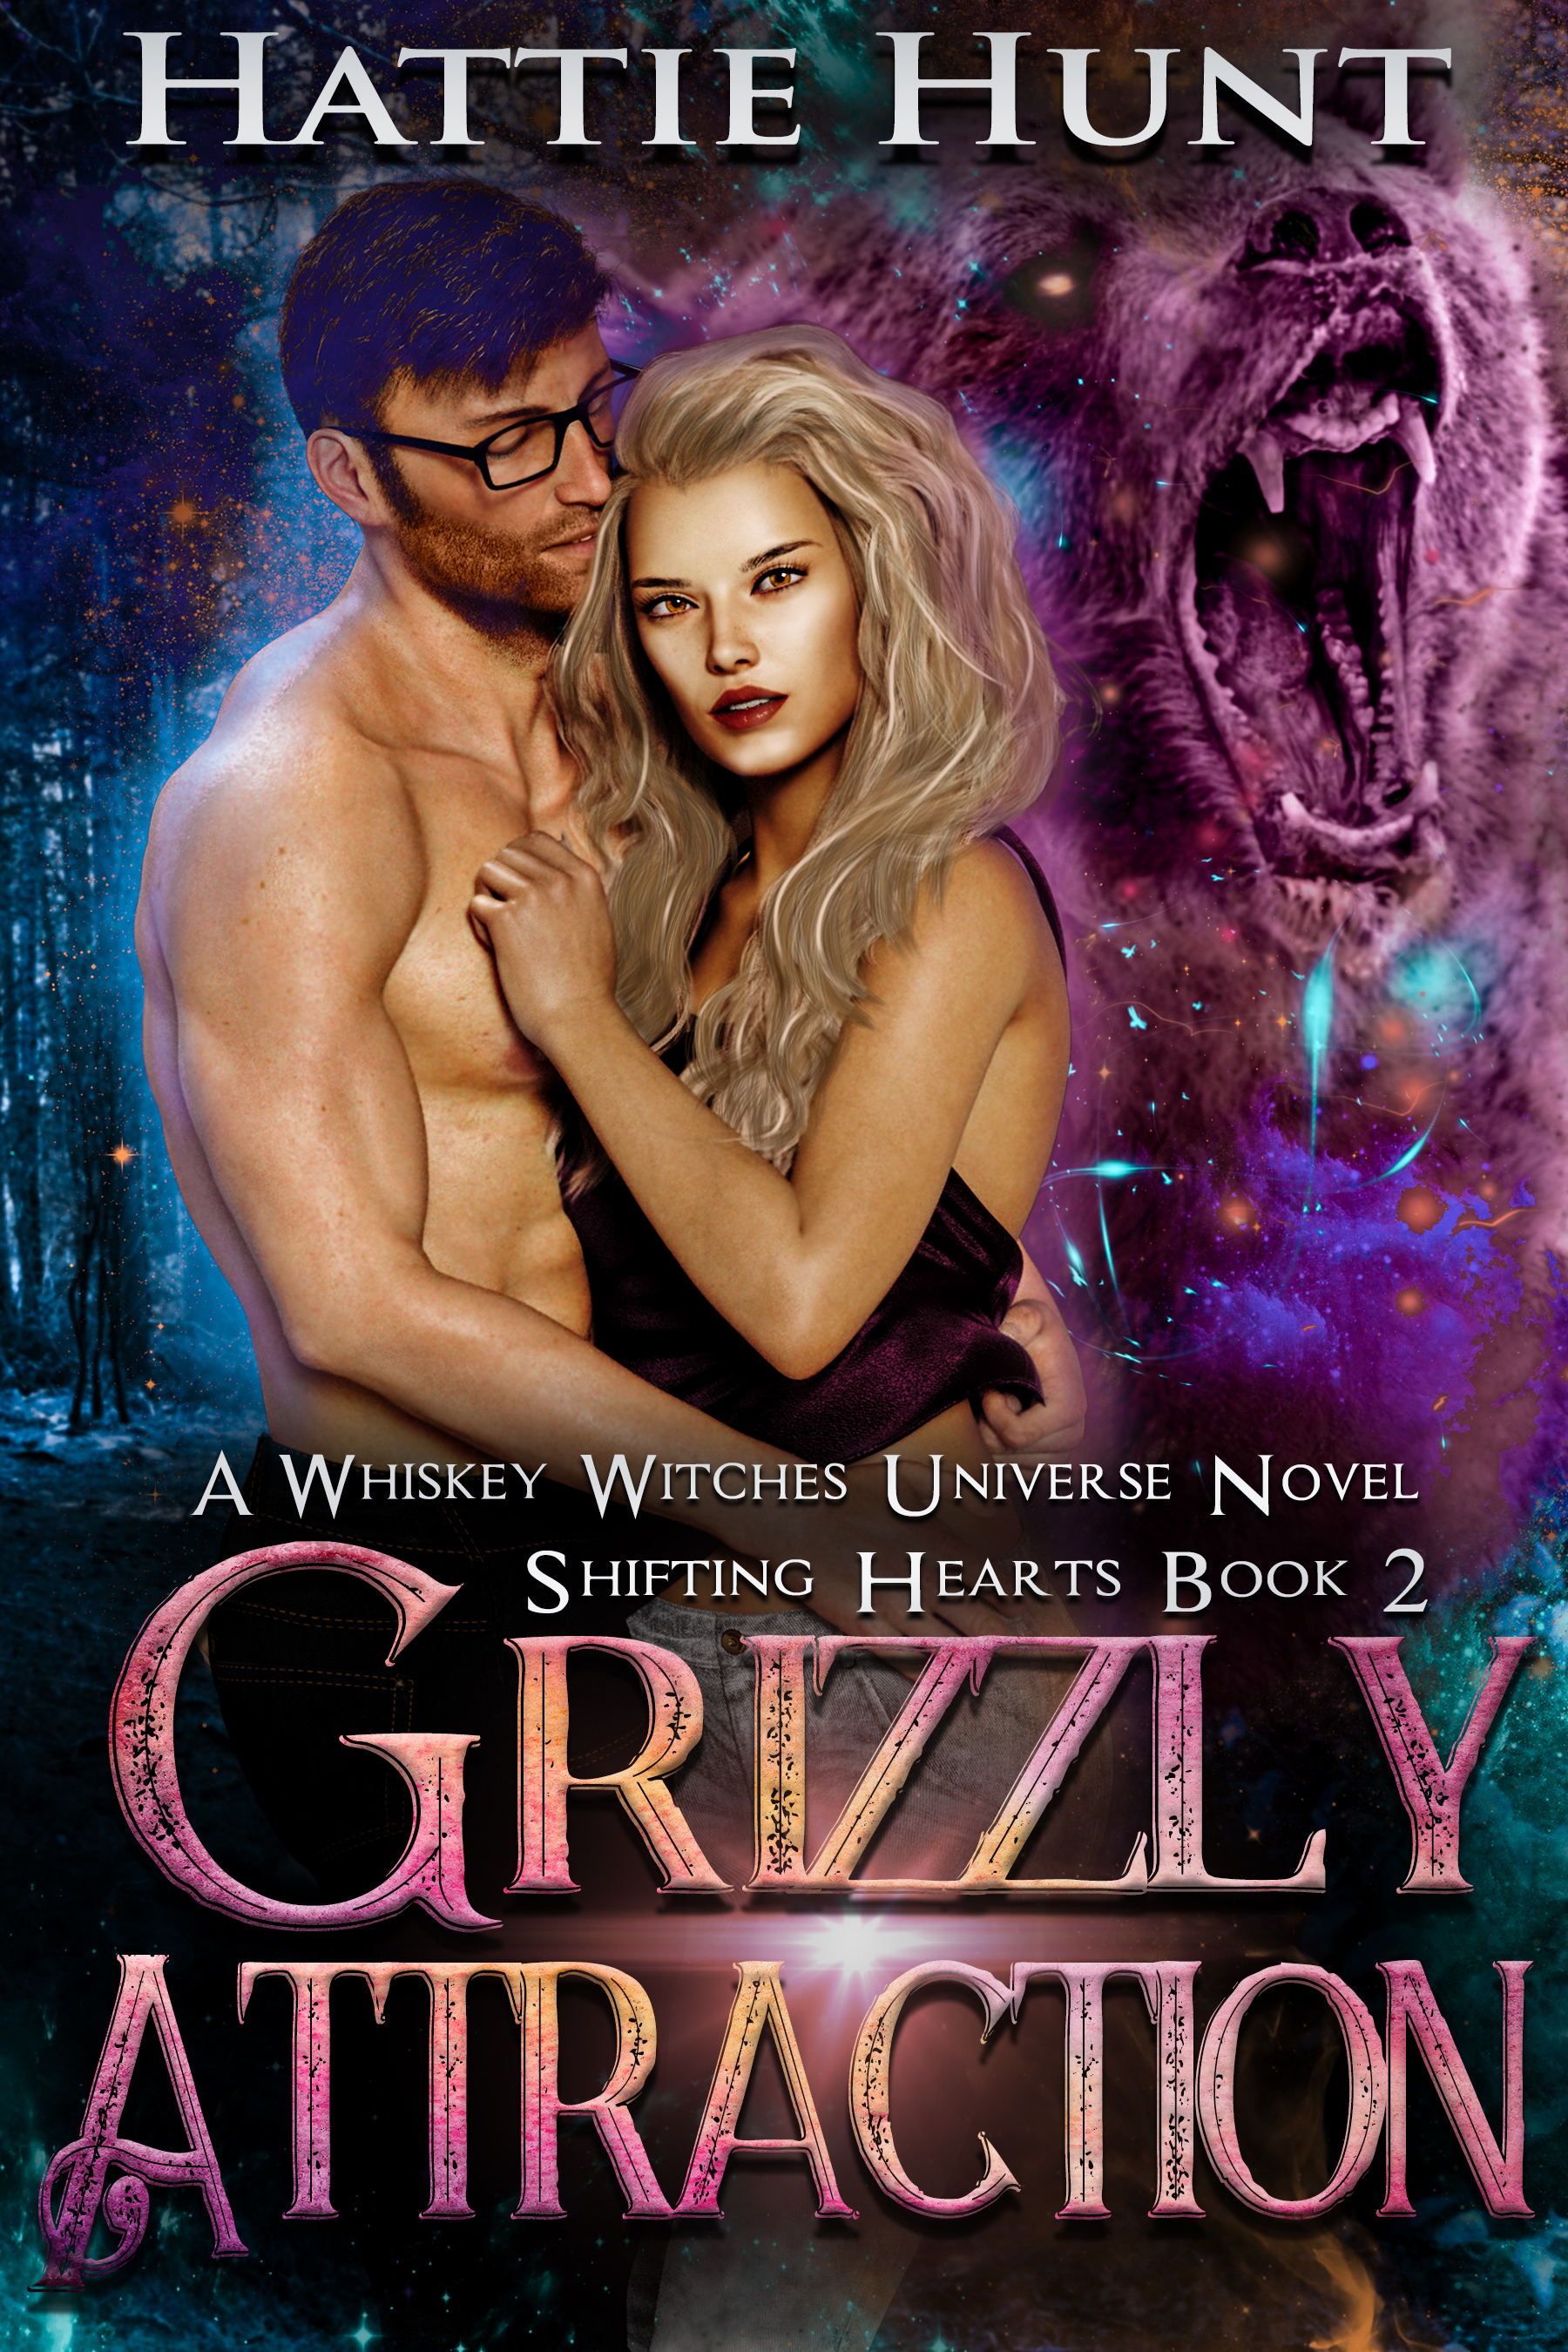 2.2018h Grizzly Attraction ebook.jpg